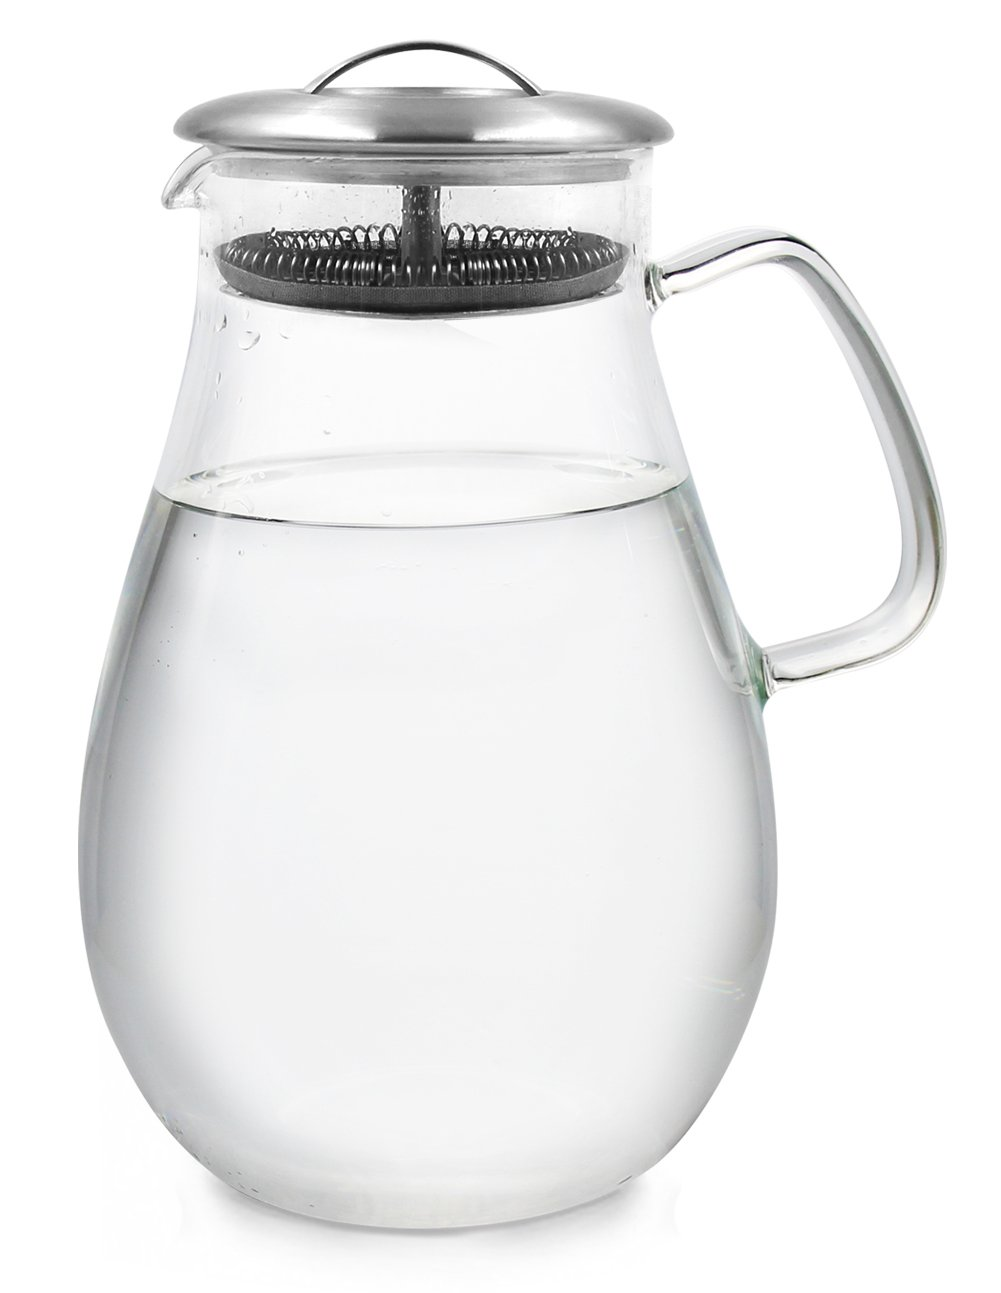 TQVAI 64 Oz Glass Water Iced Tea Pitcher with Stainless Steel Lid